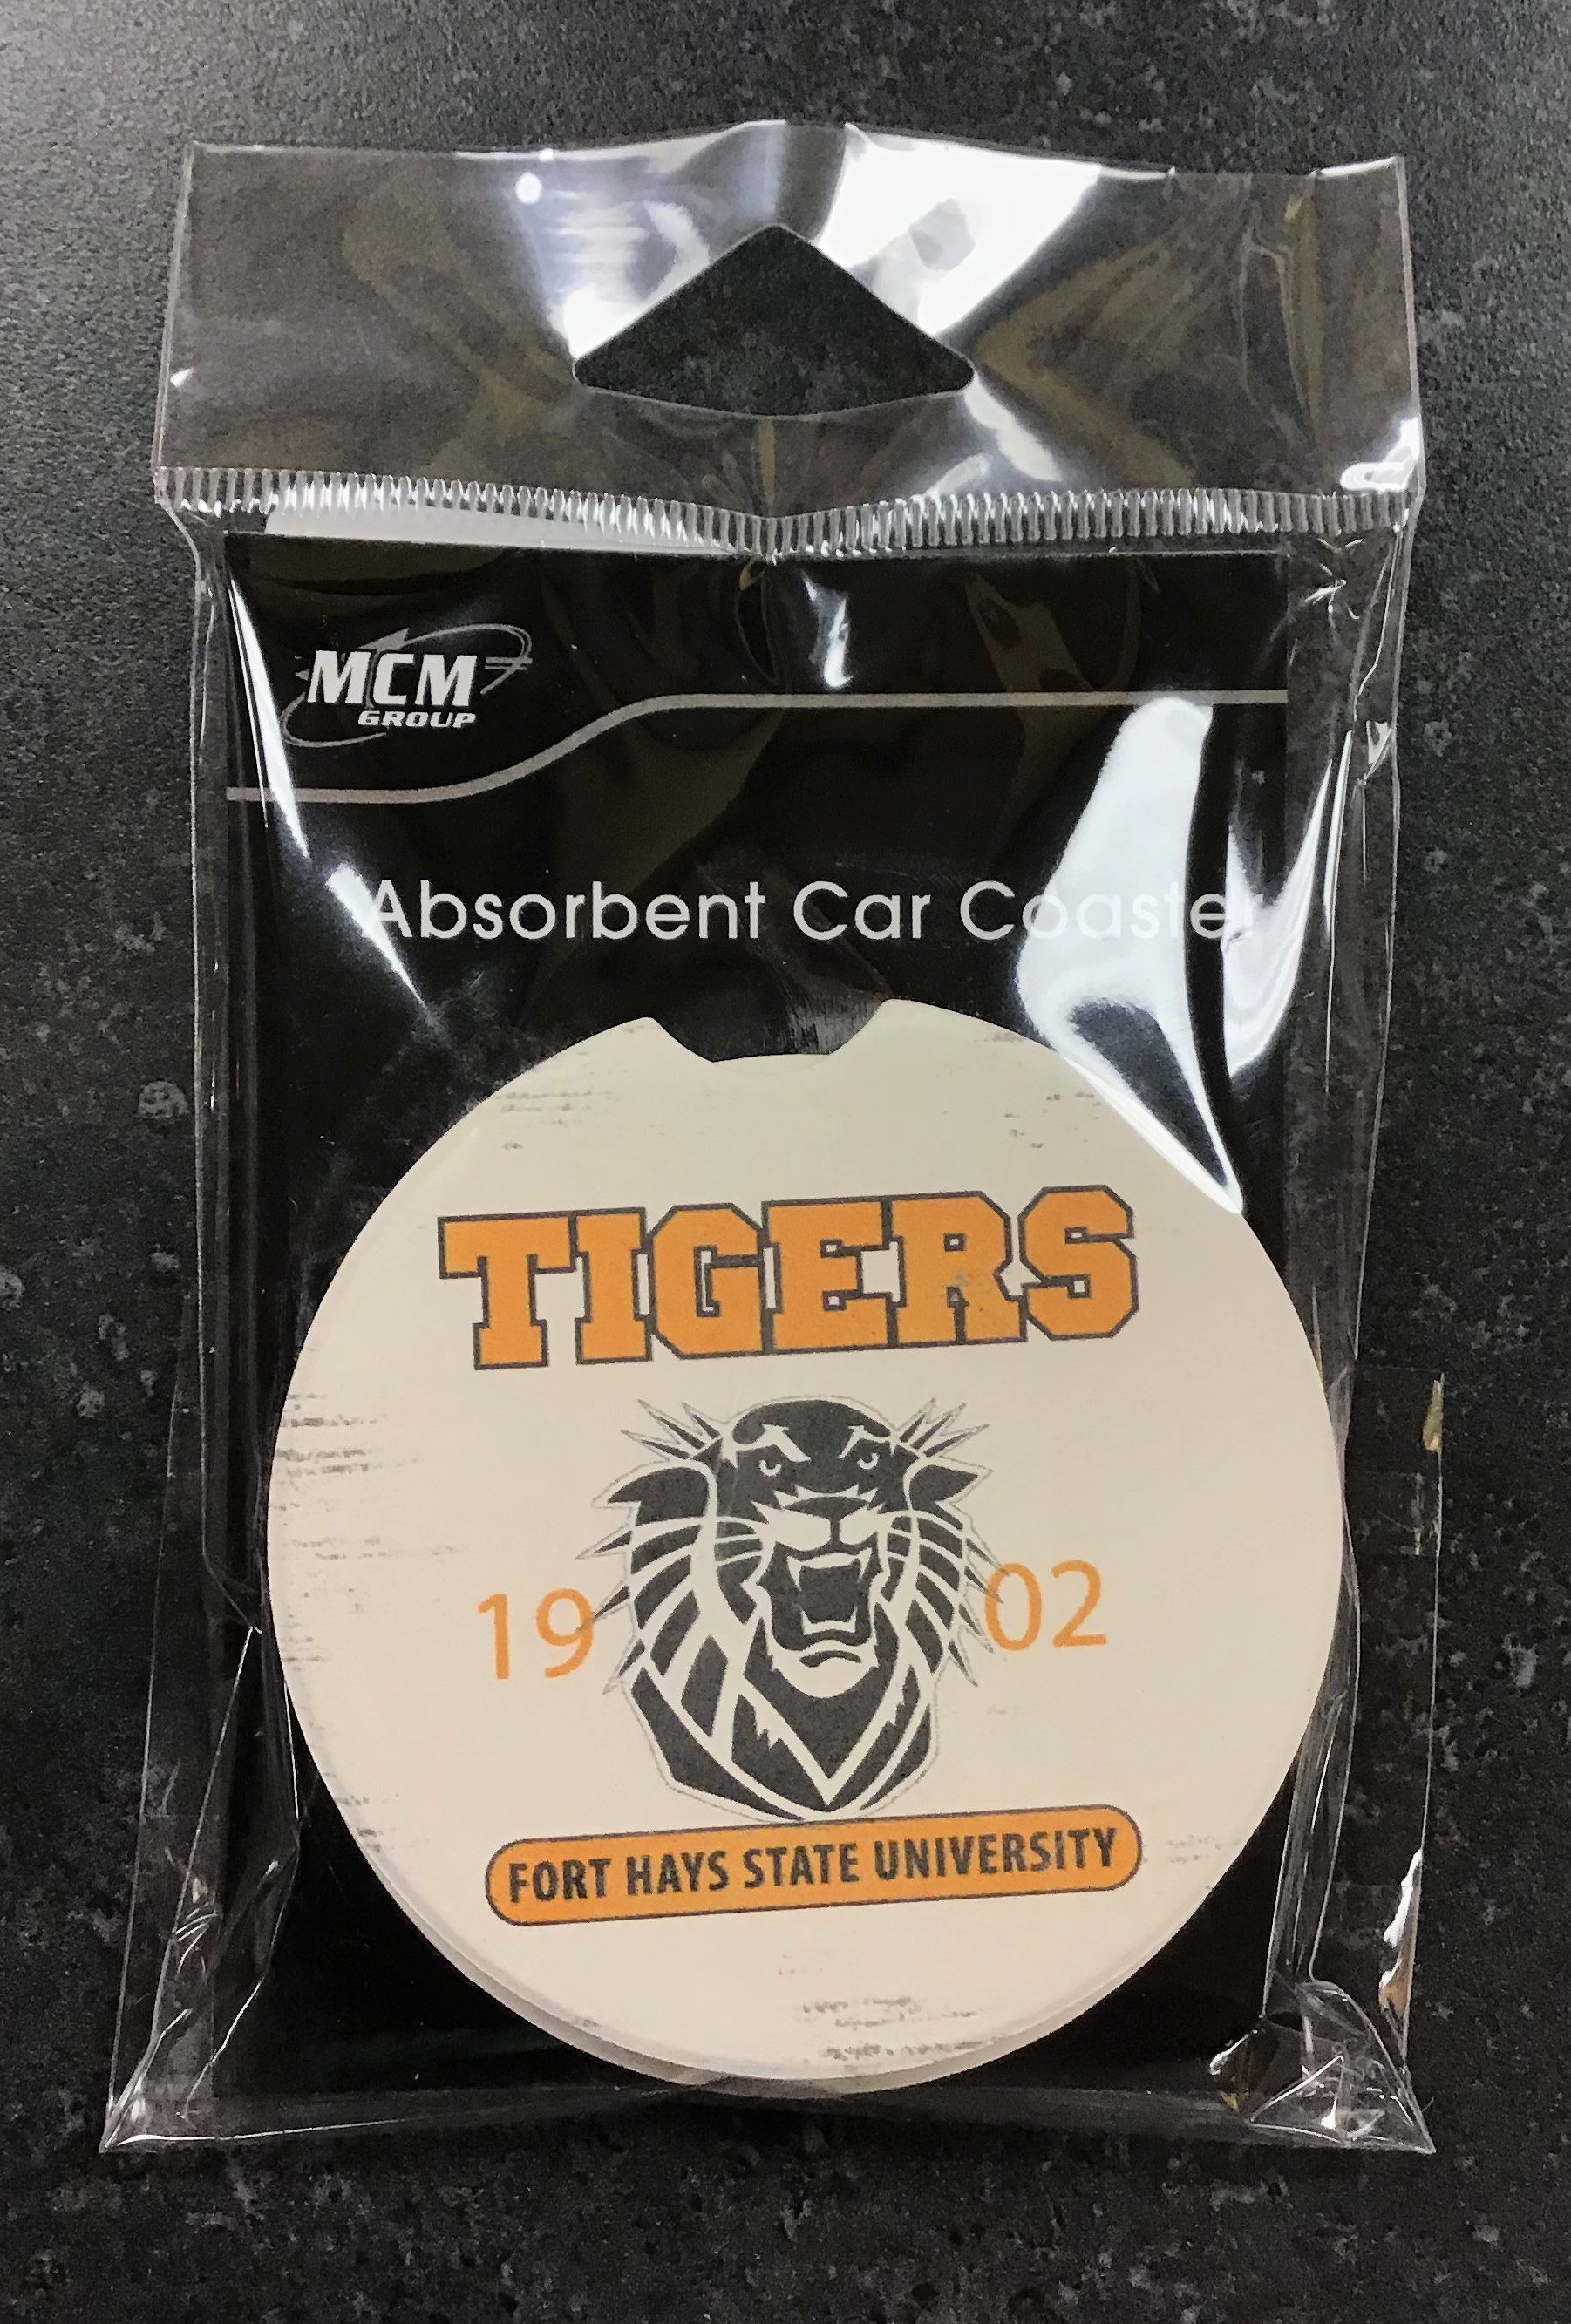 Image for the Car Coaster with Tiger Mascot MCM product